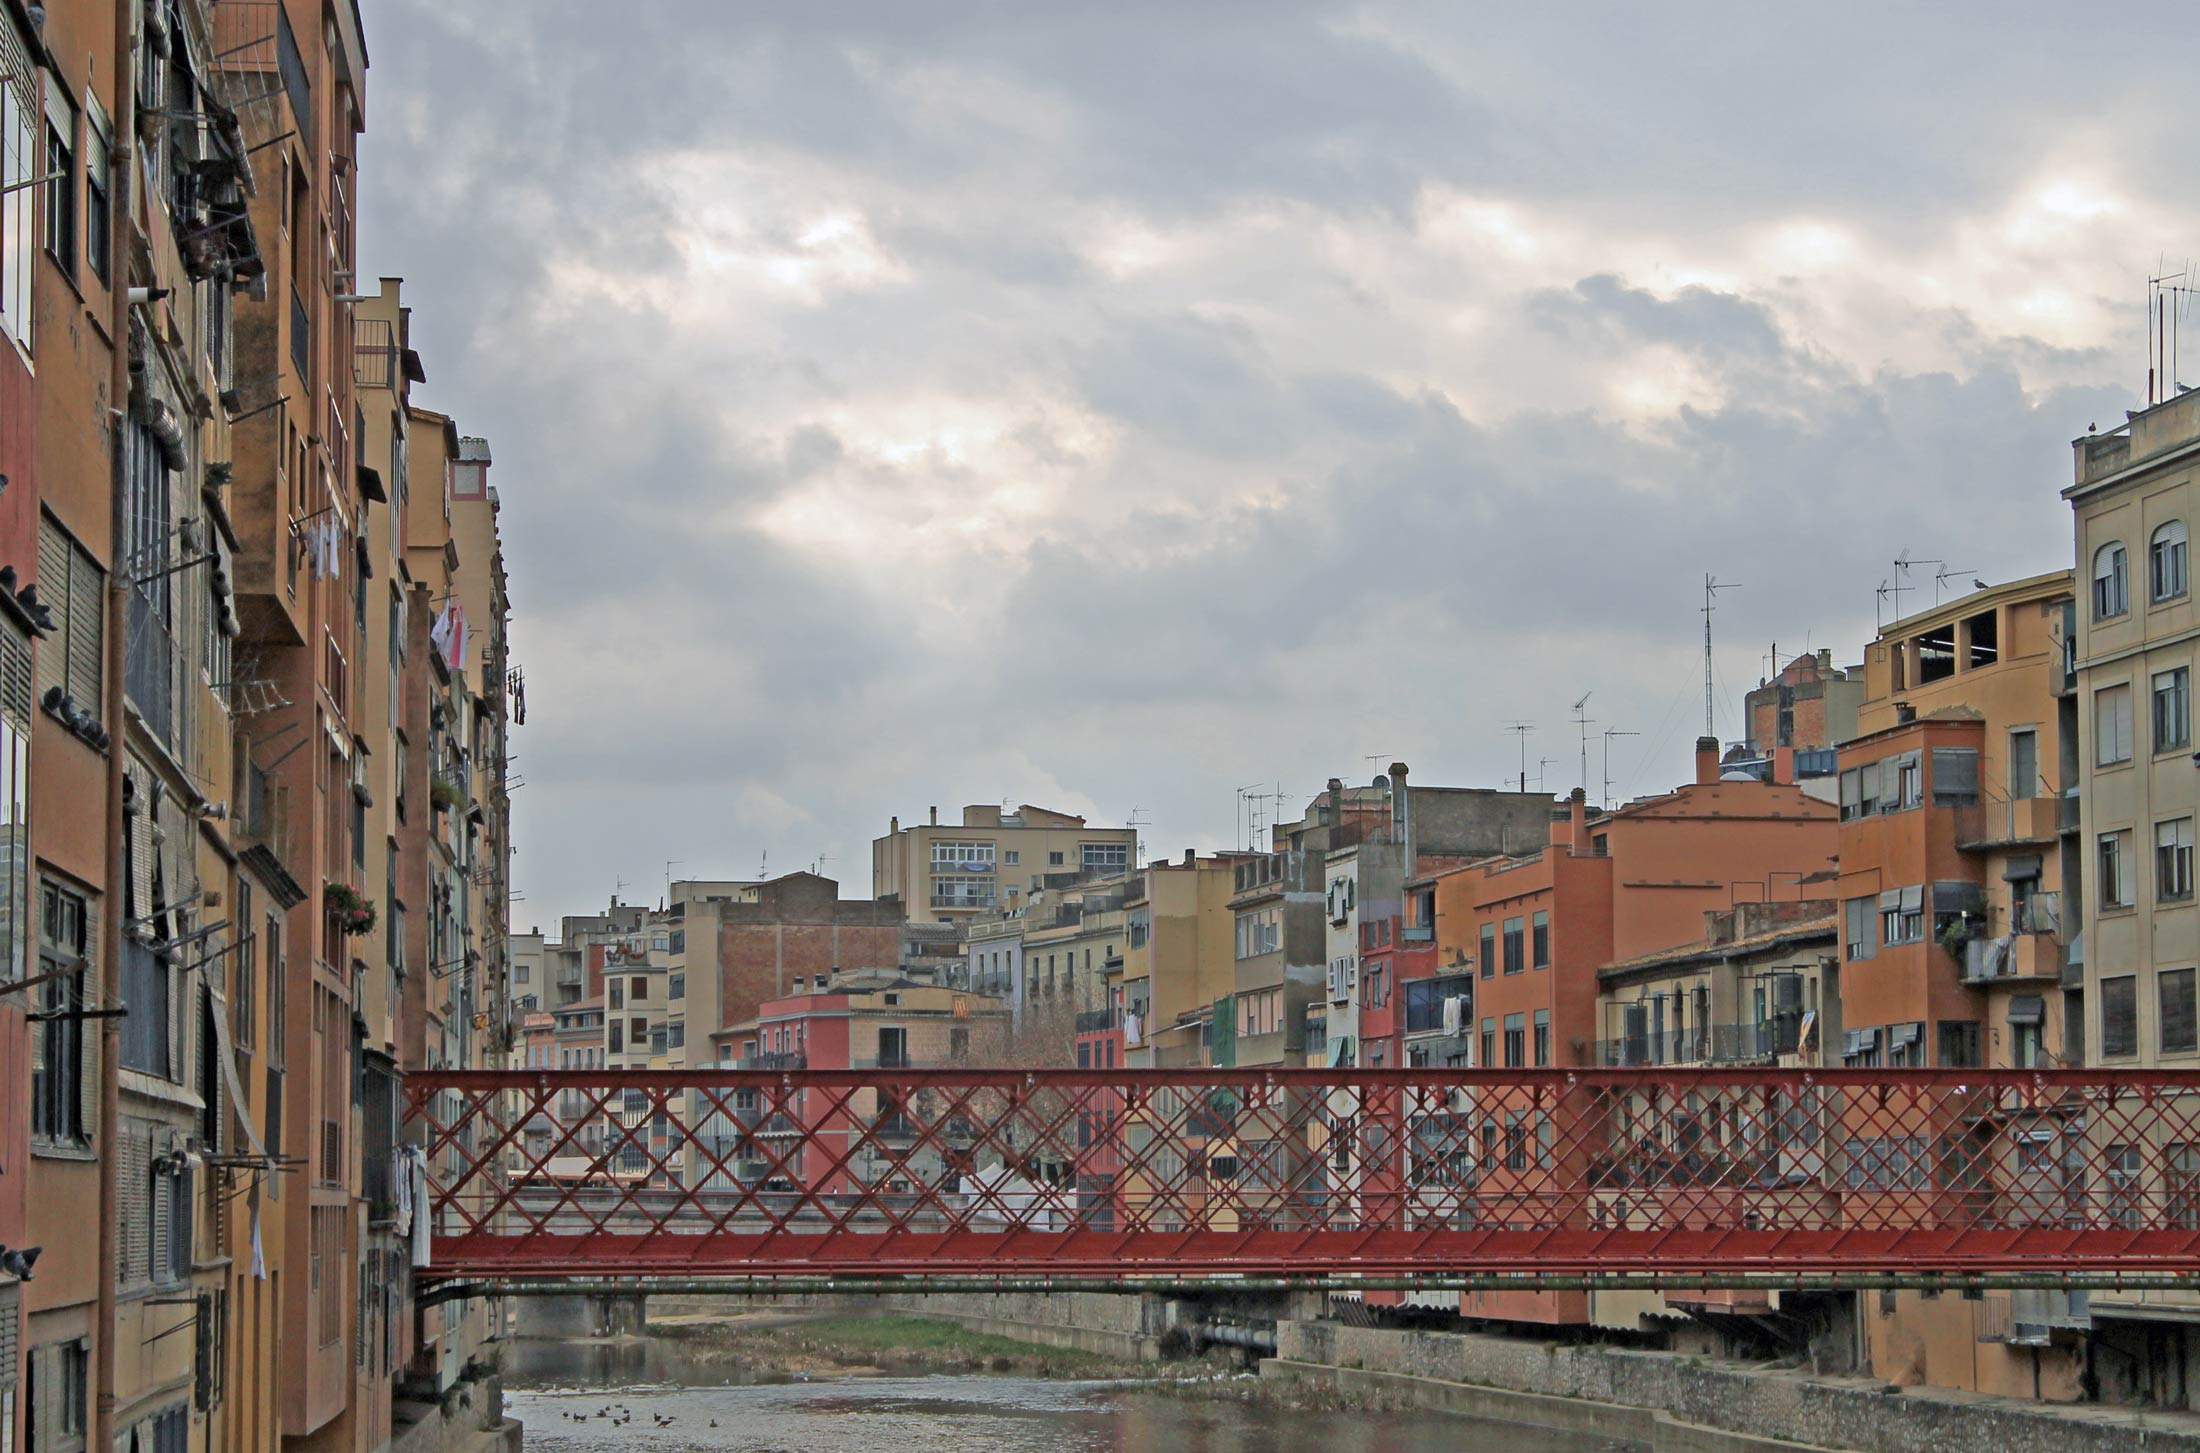 Eiffel Bridge in Girona - Focal Journey (by Gustavo Espinola